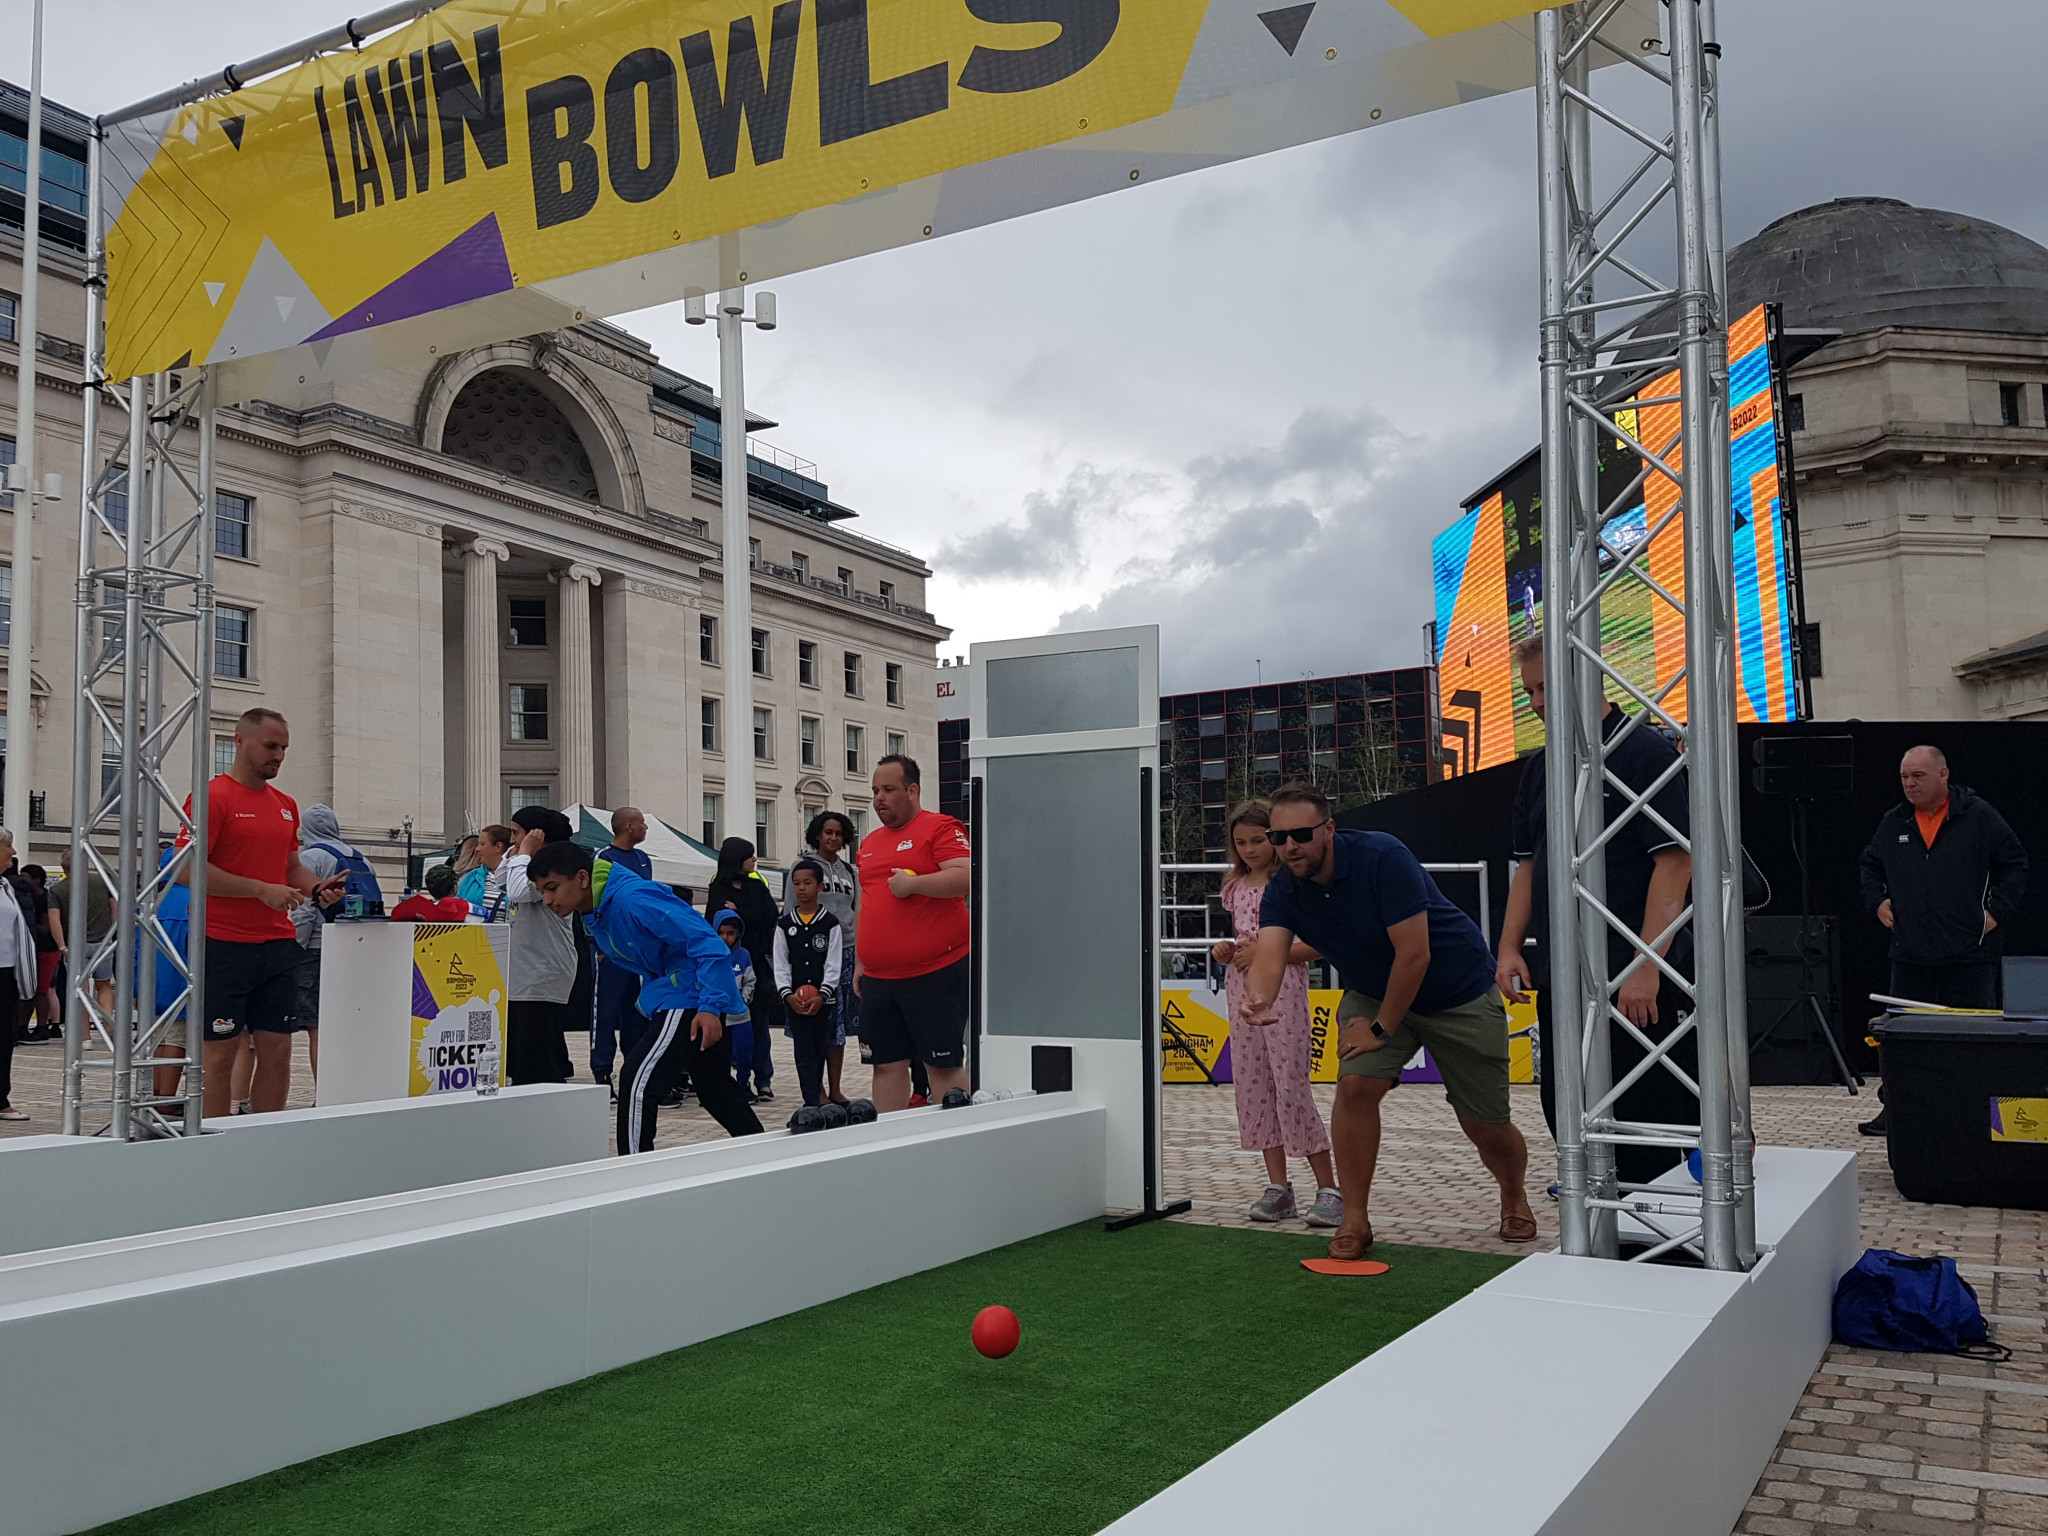 Lawn bowls was popular with the public, with participants attempting to roll balls into holes ©ITG